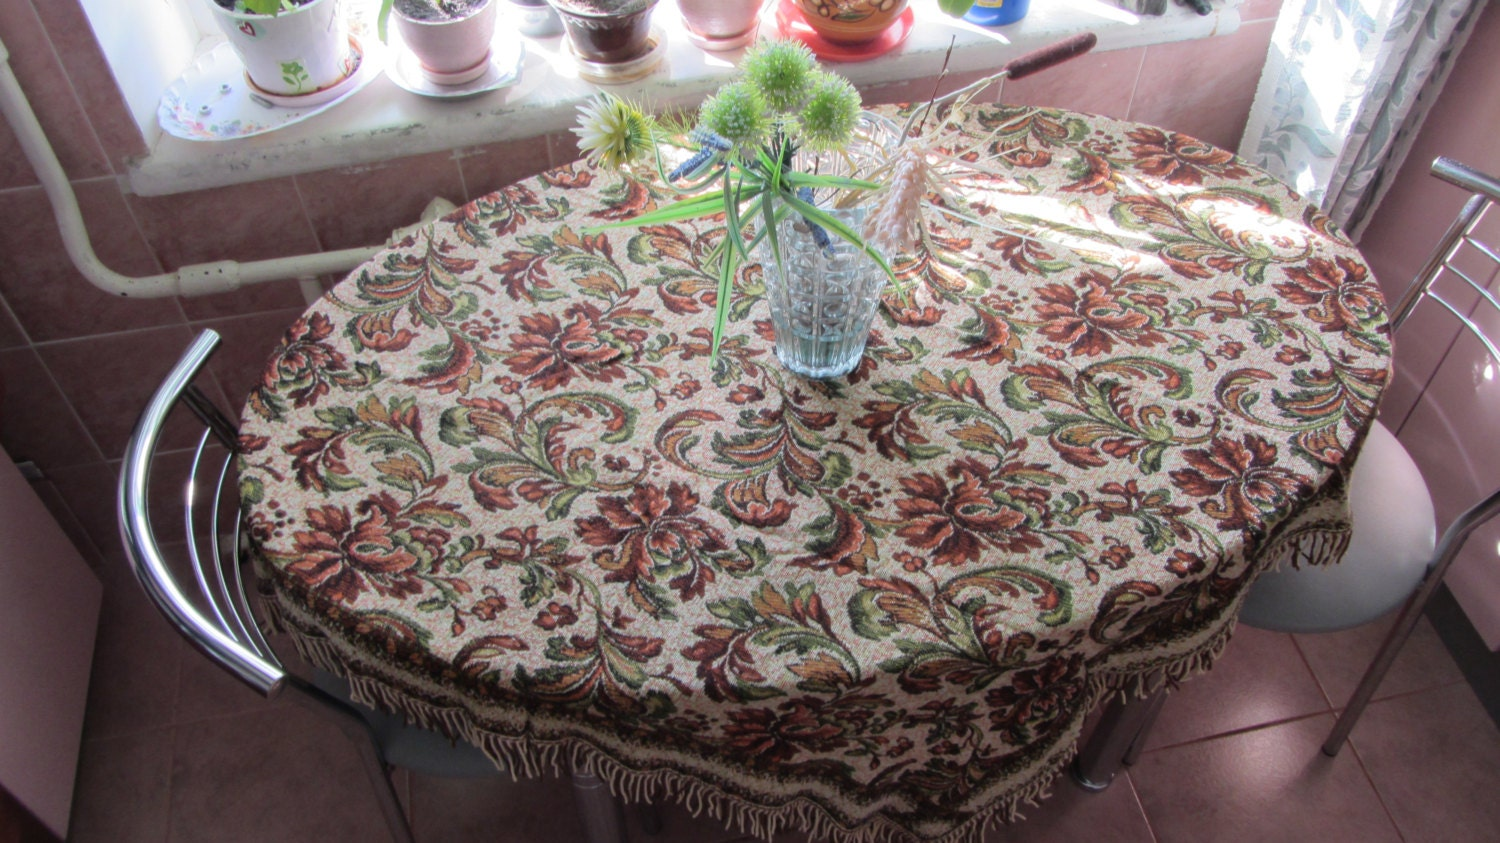 Vintage Germany Square Tablecloth, fringe edges, Wall Decor Carpet, German Decor